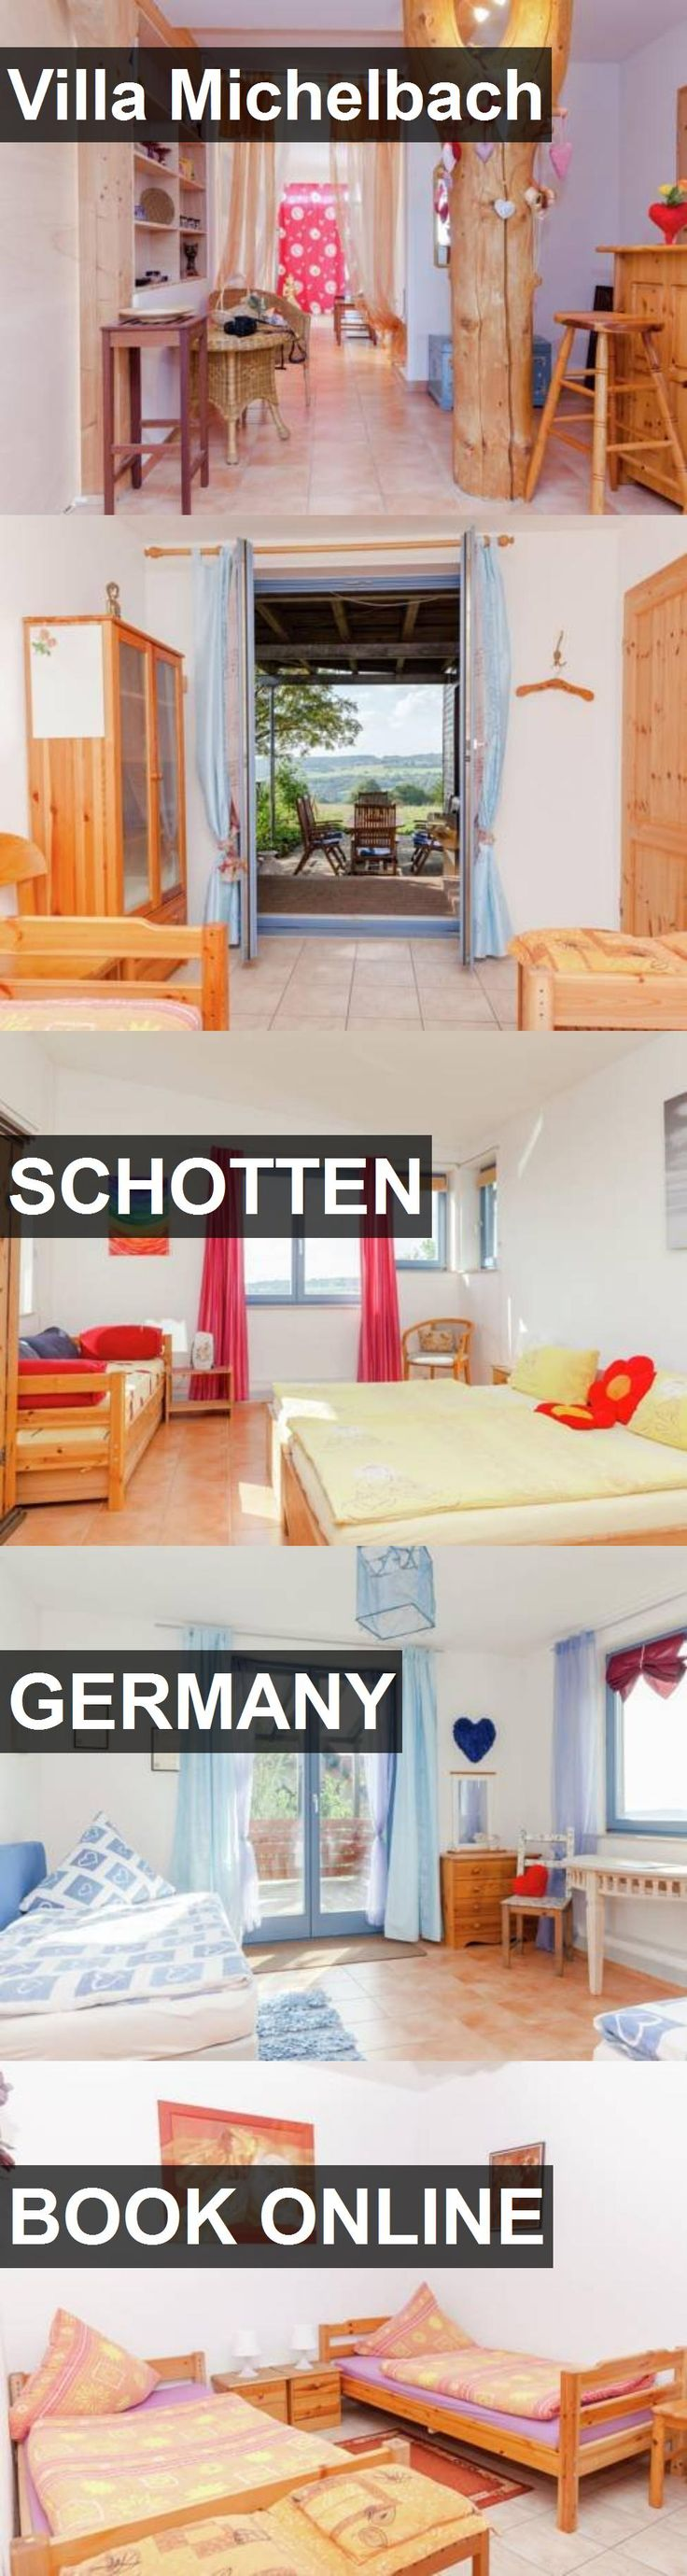 Hotel Villa Michelbach in Schotten, Germany. For more information, photos, reviews and best prices please follow the link. #Germany #Schotten #travel #vacation #hotel